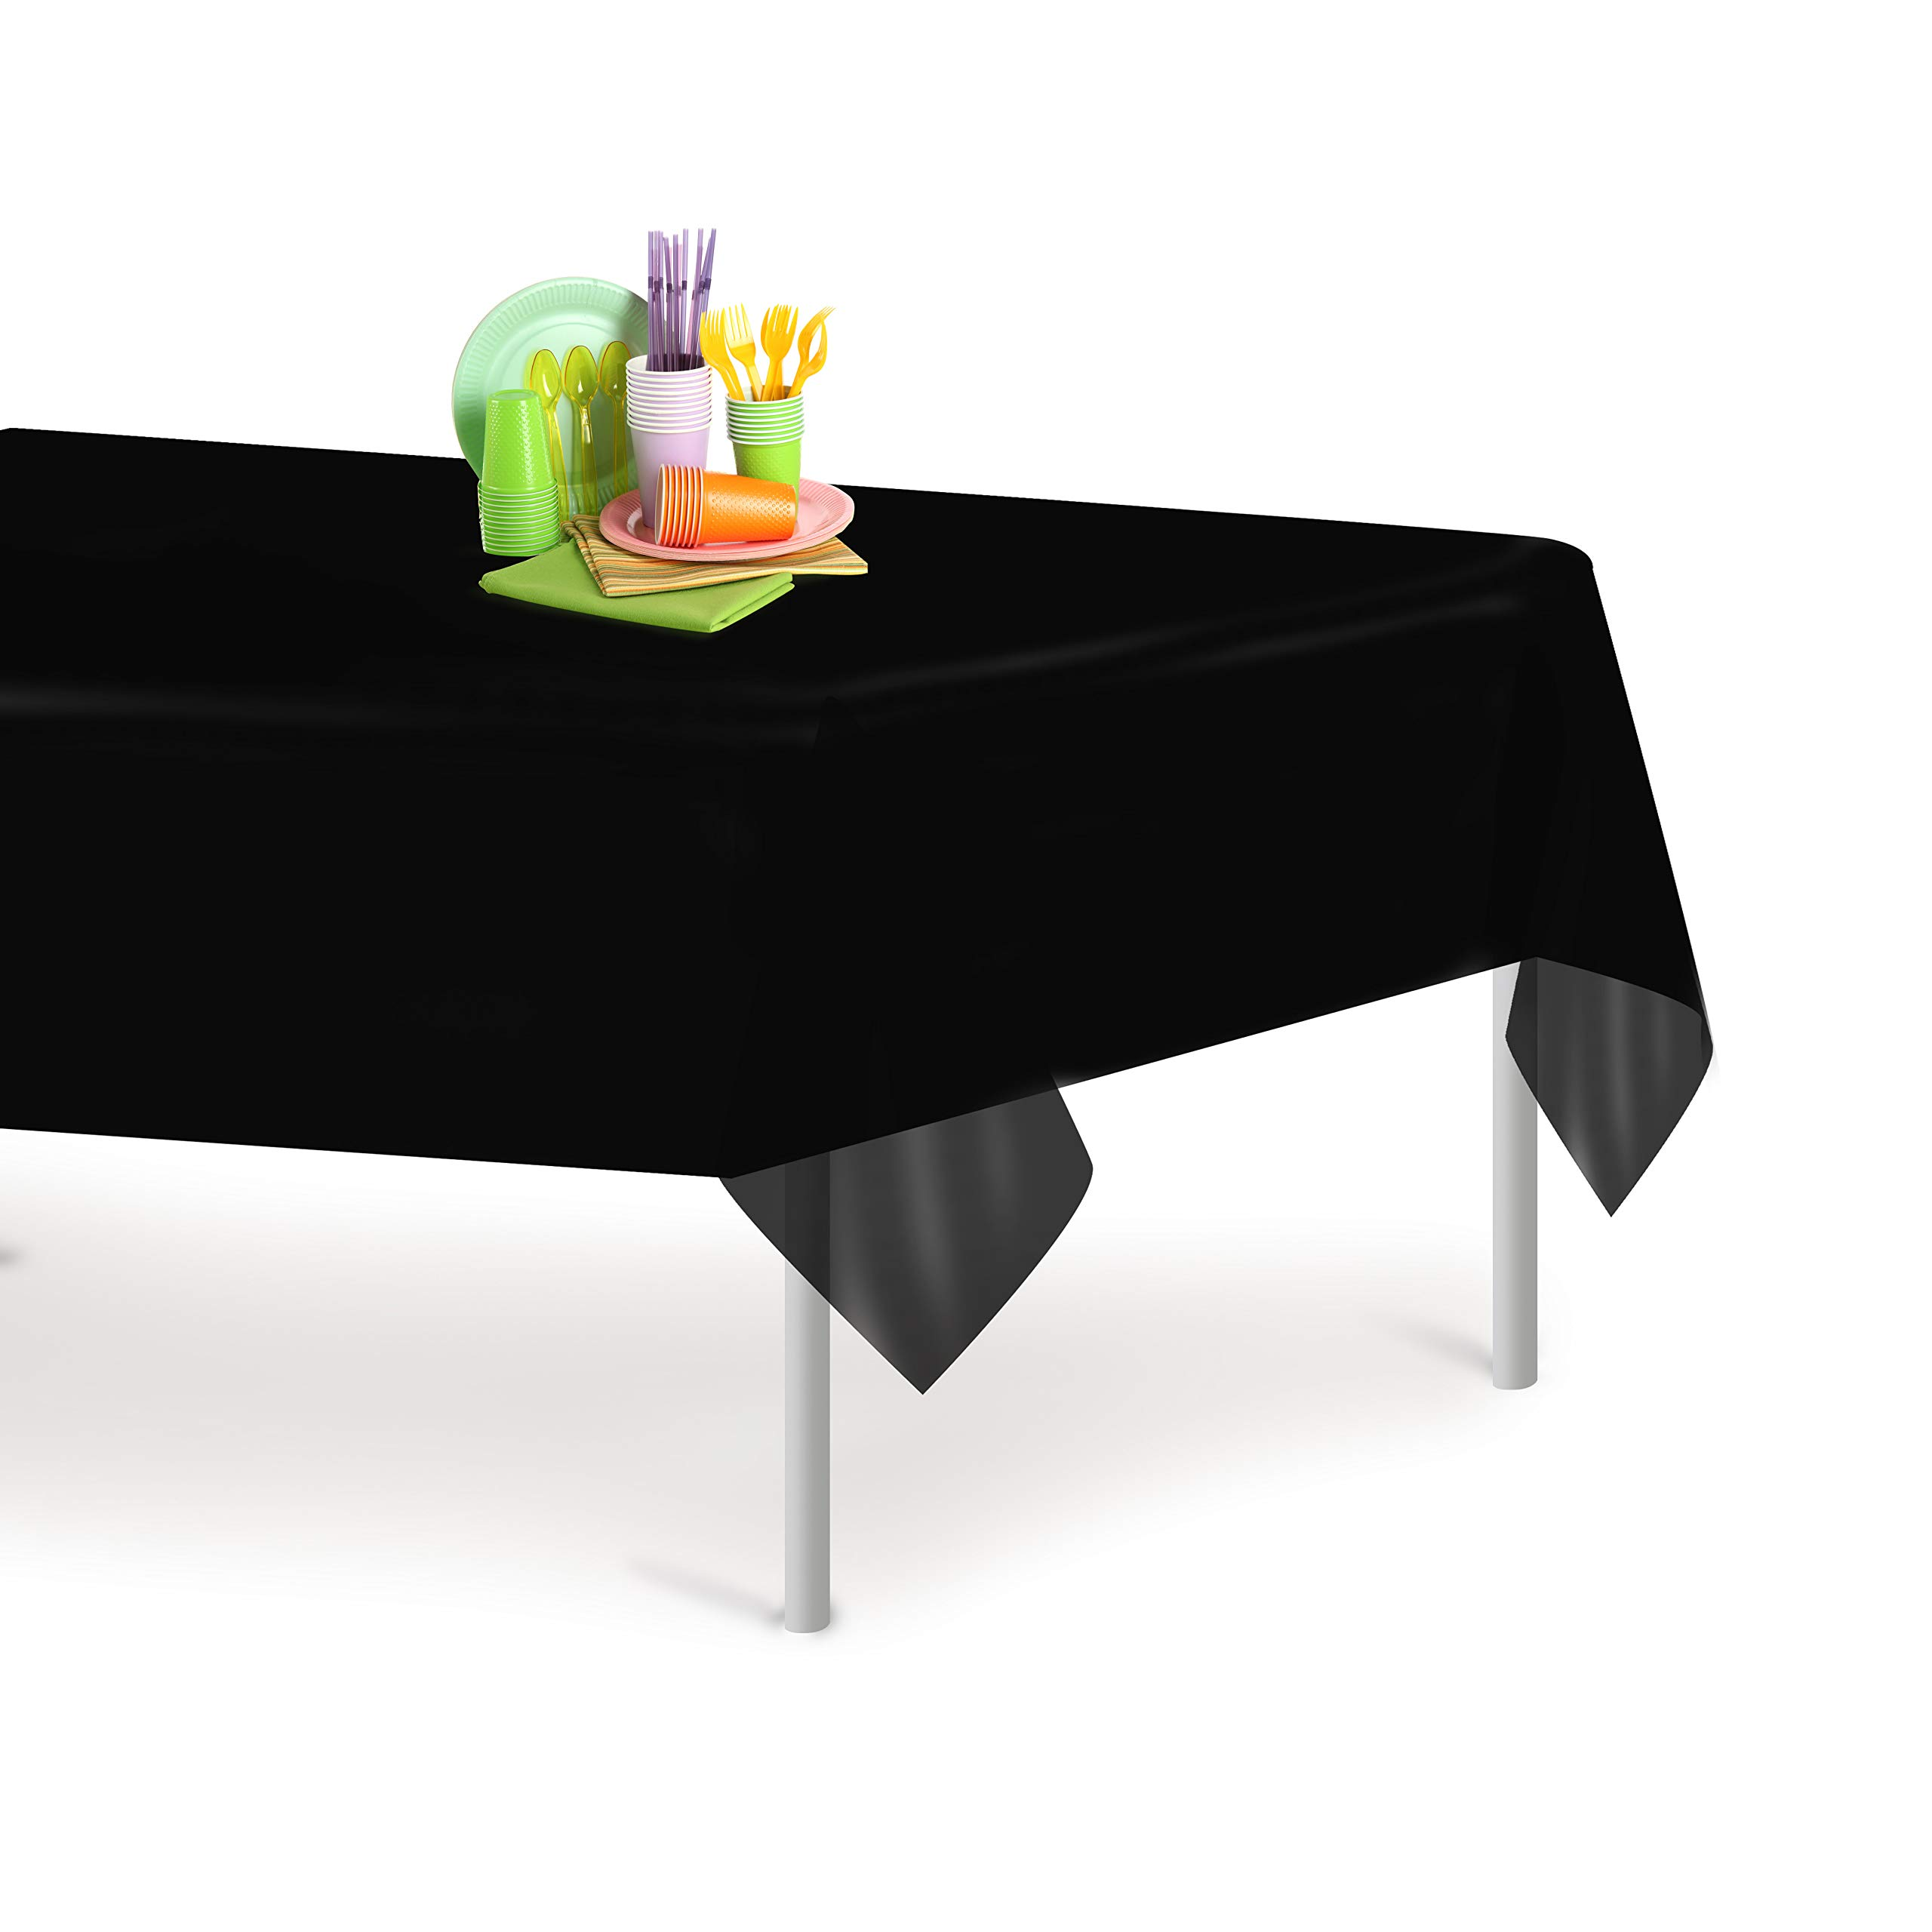 Black 12 Pack Premium Disposable Plastic Tablecloth 54 Inch. x 108 Inch. Rectangle Table Cover By Grandipity by Grandipity (Image #1)